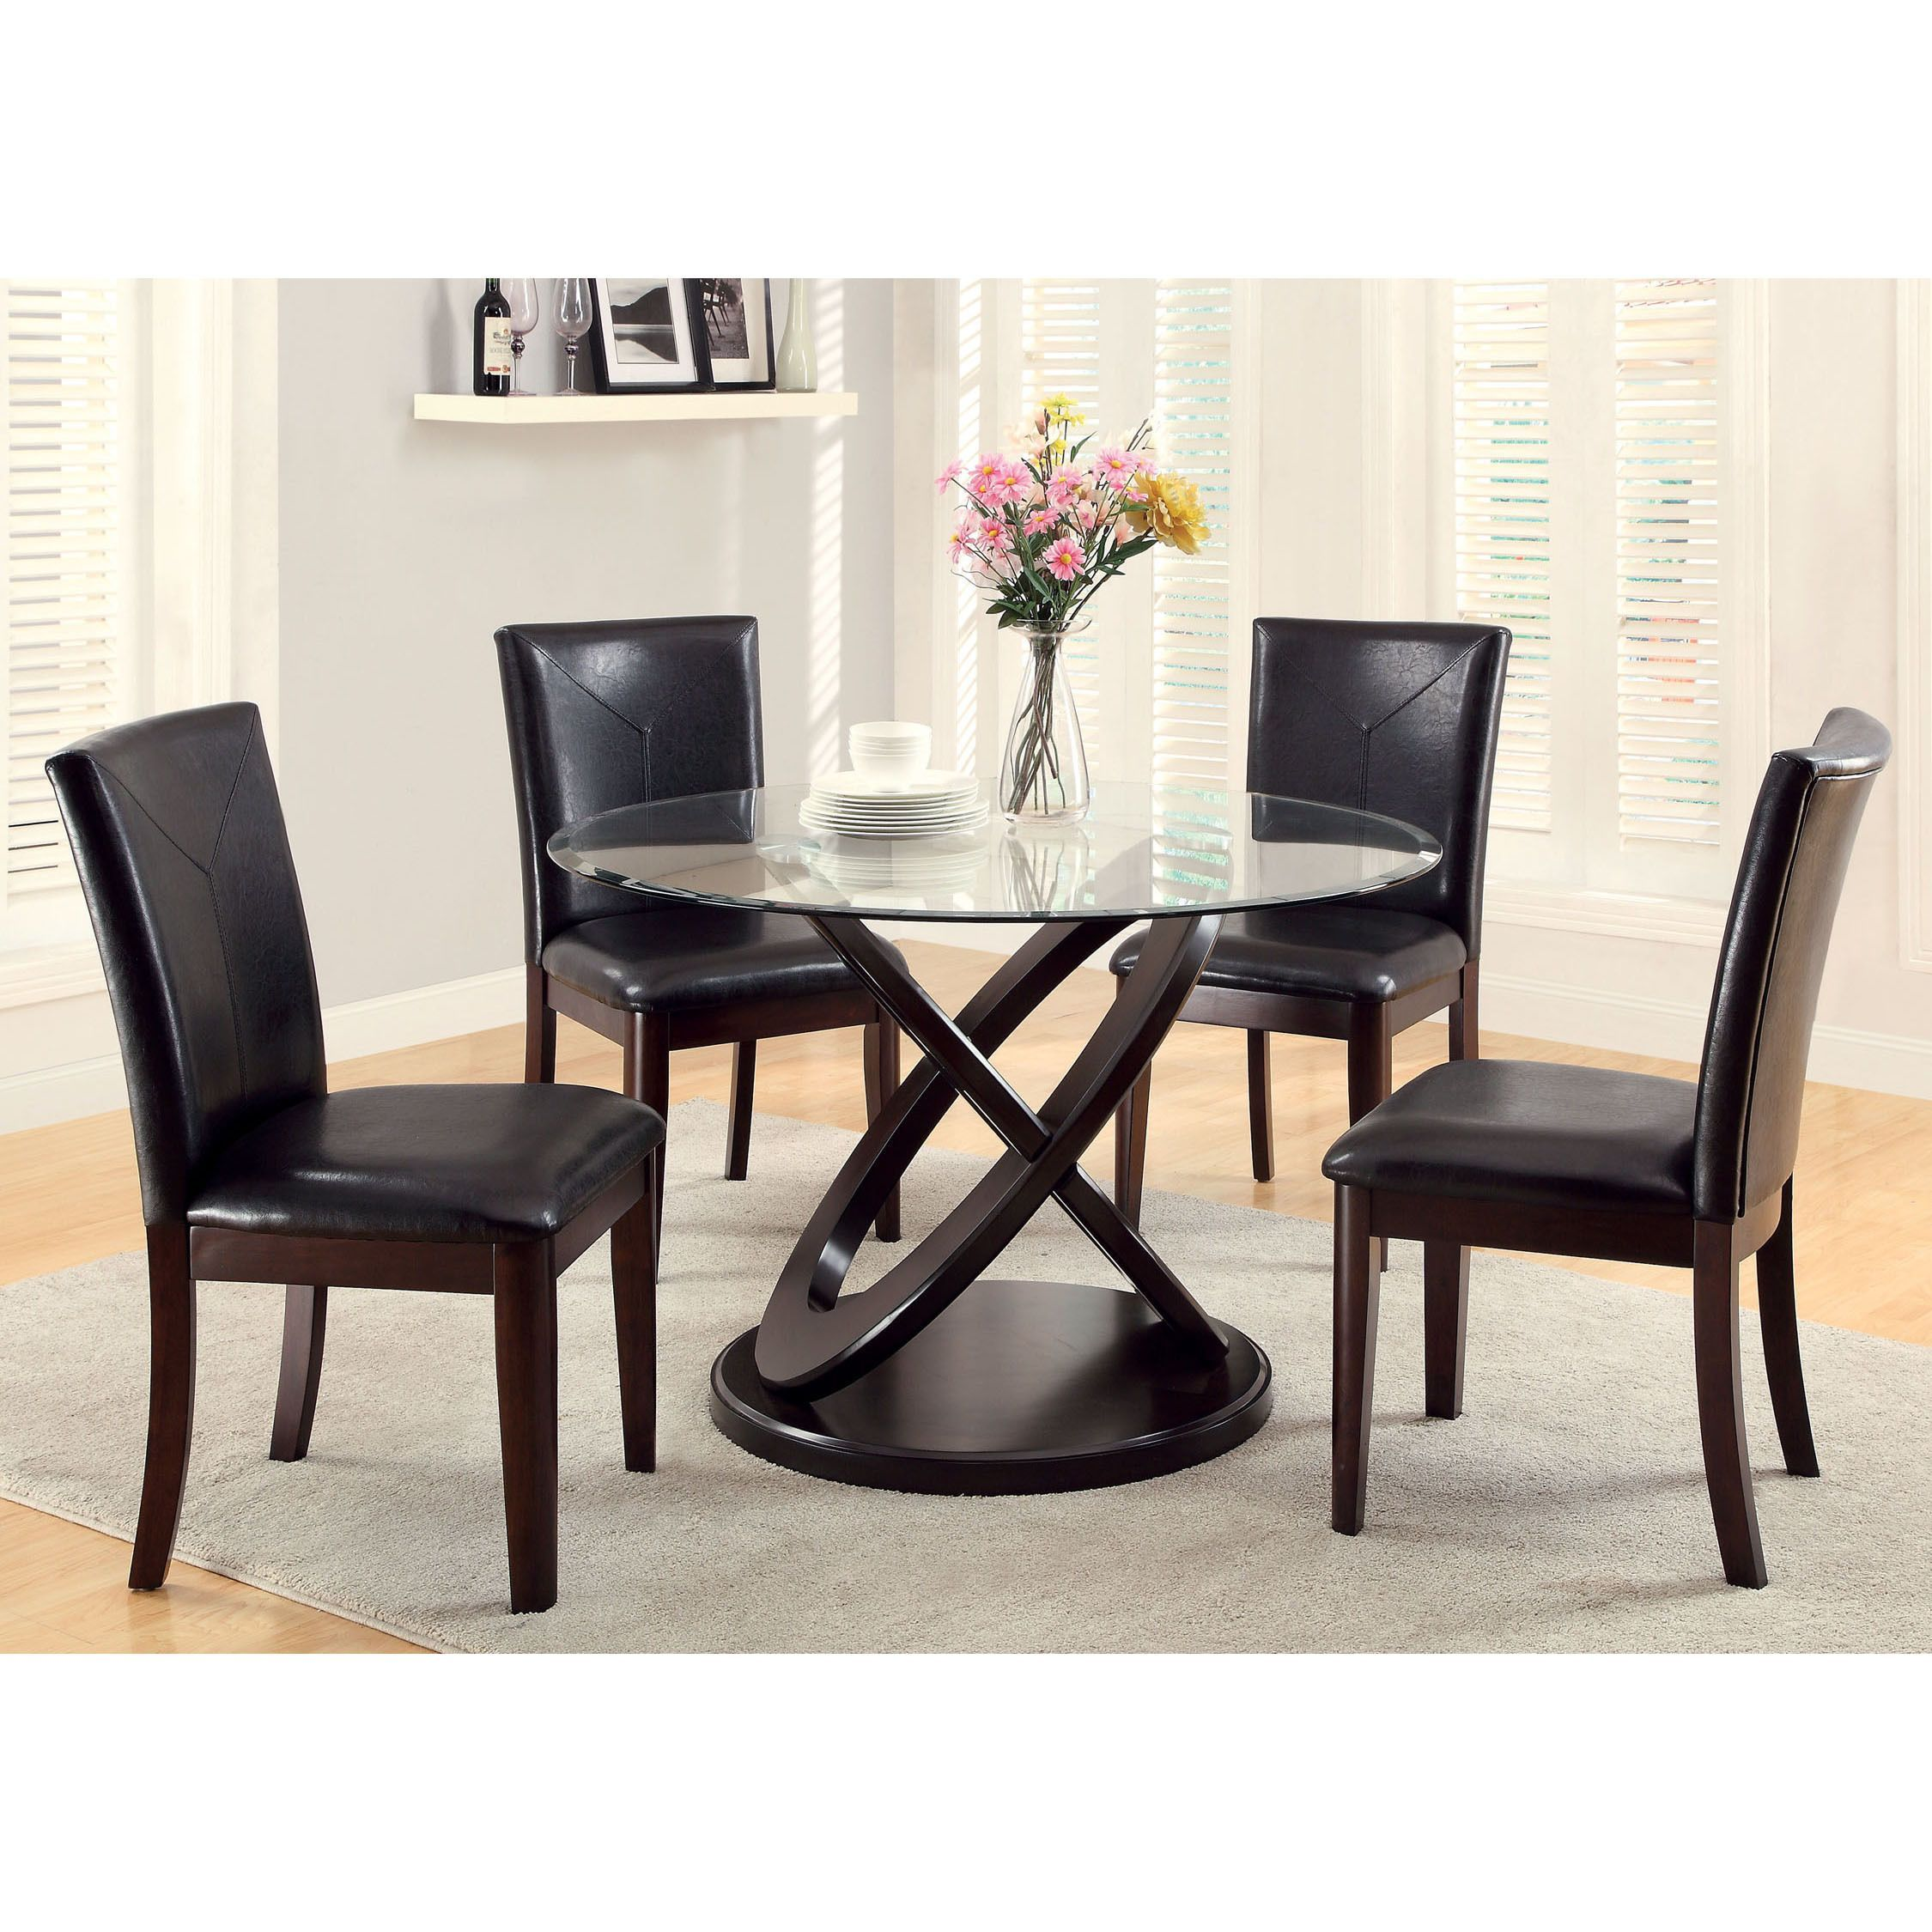 Overstock Dinning Table Set